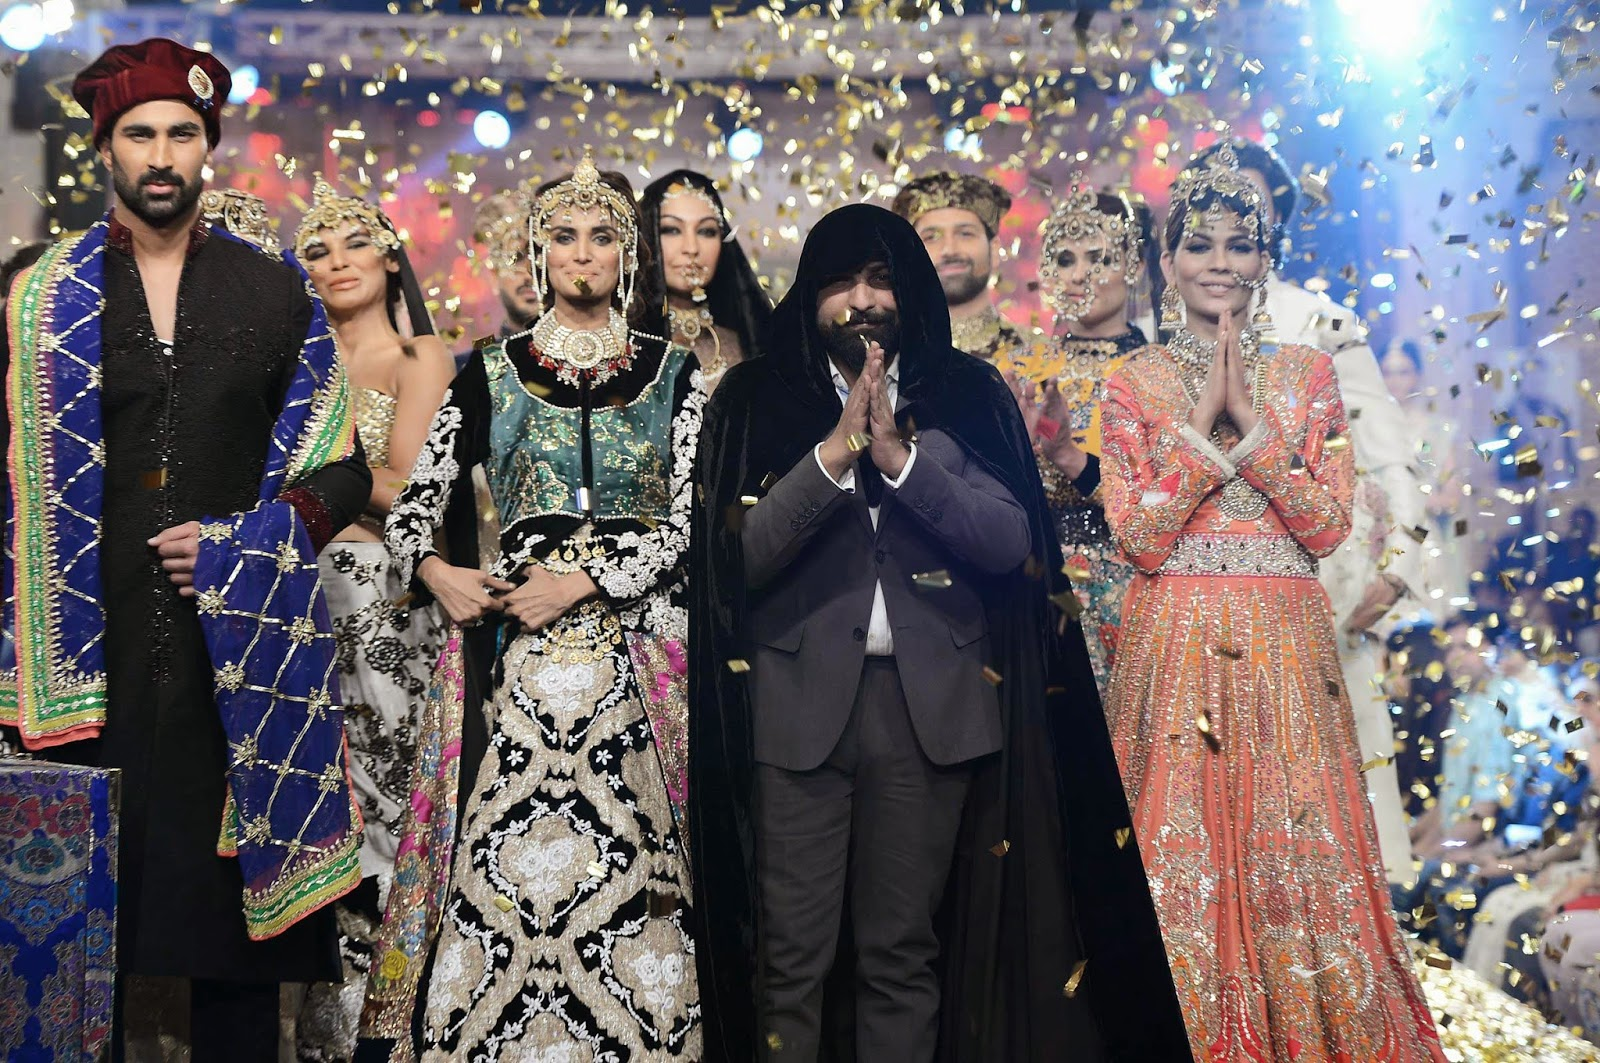 'Baghawat' by Ali Xeeshan Theater Studio at PLBW 2014